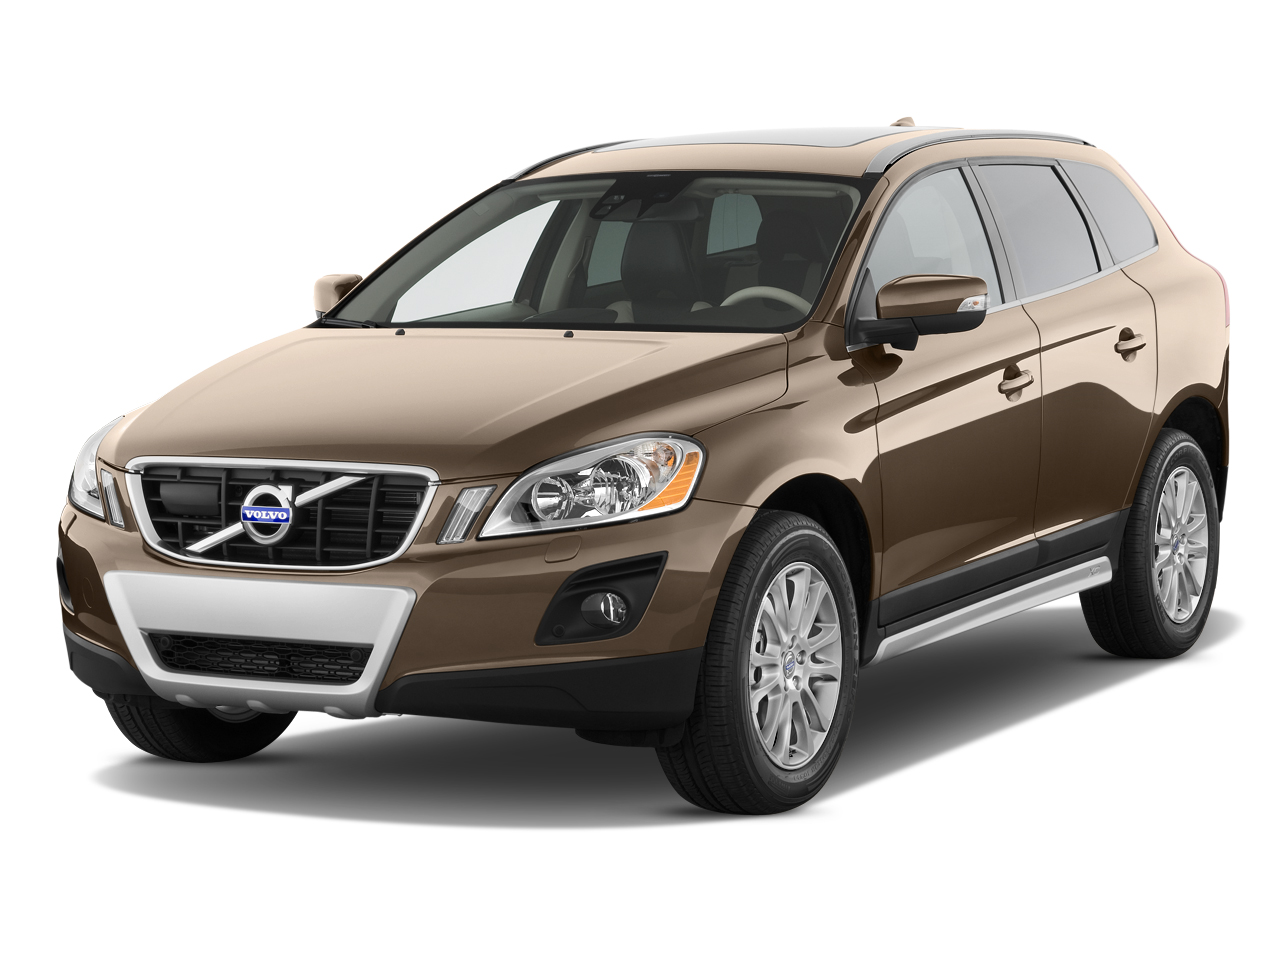 2011 volvo xc60 safety review and crash test ratings the. Black Bedroom Furniture Sets. Home Design Ideas